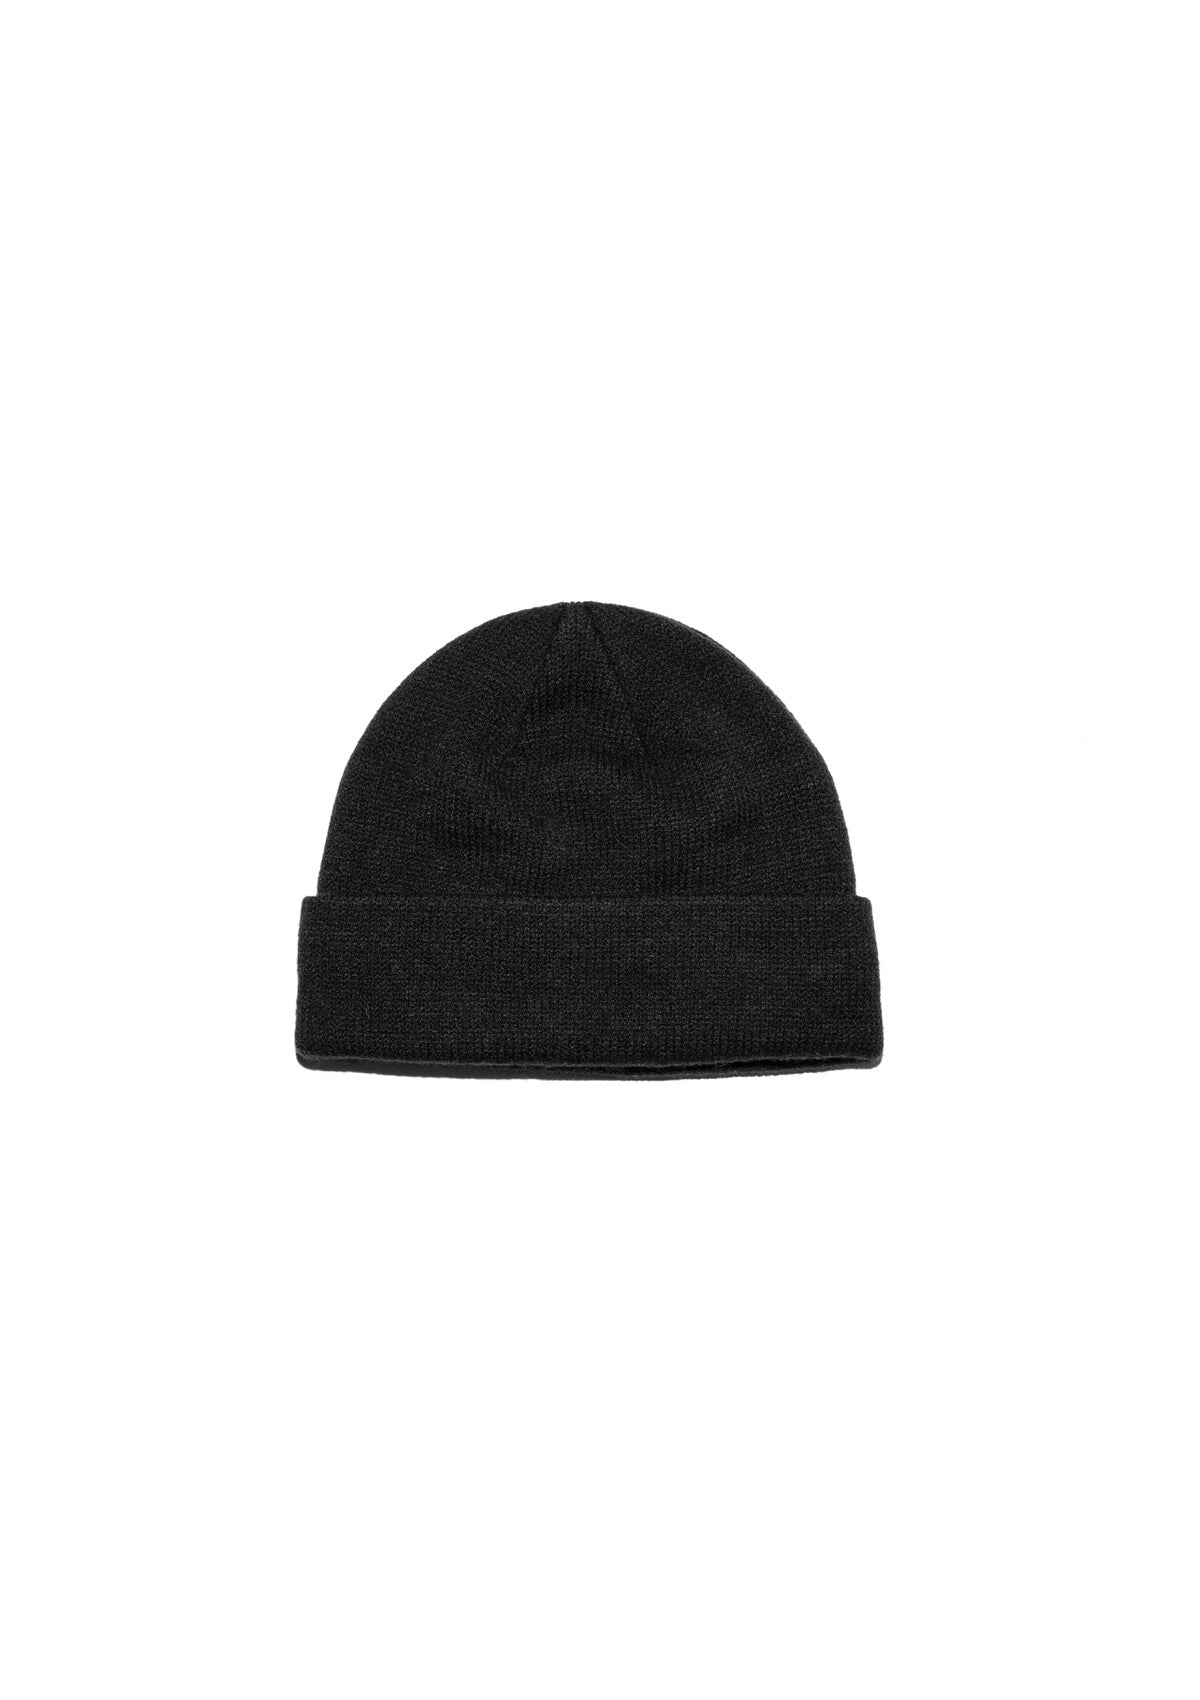 needessentials seedMob beanie black